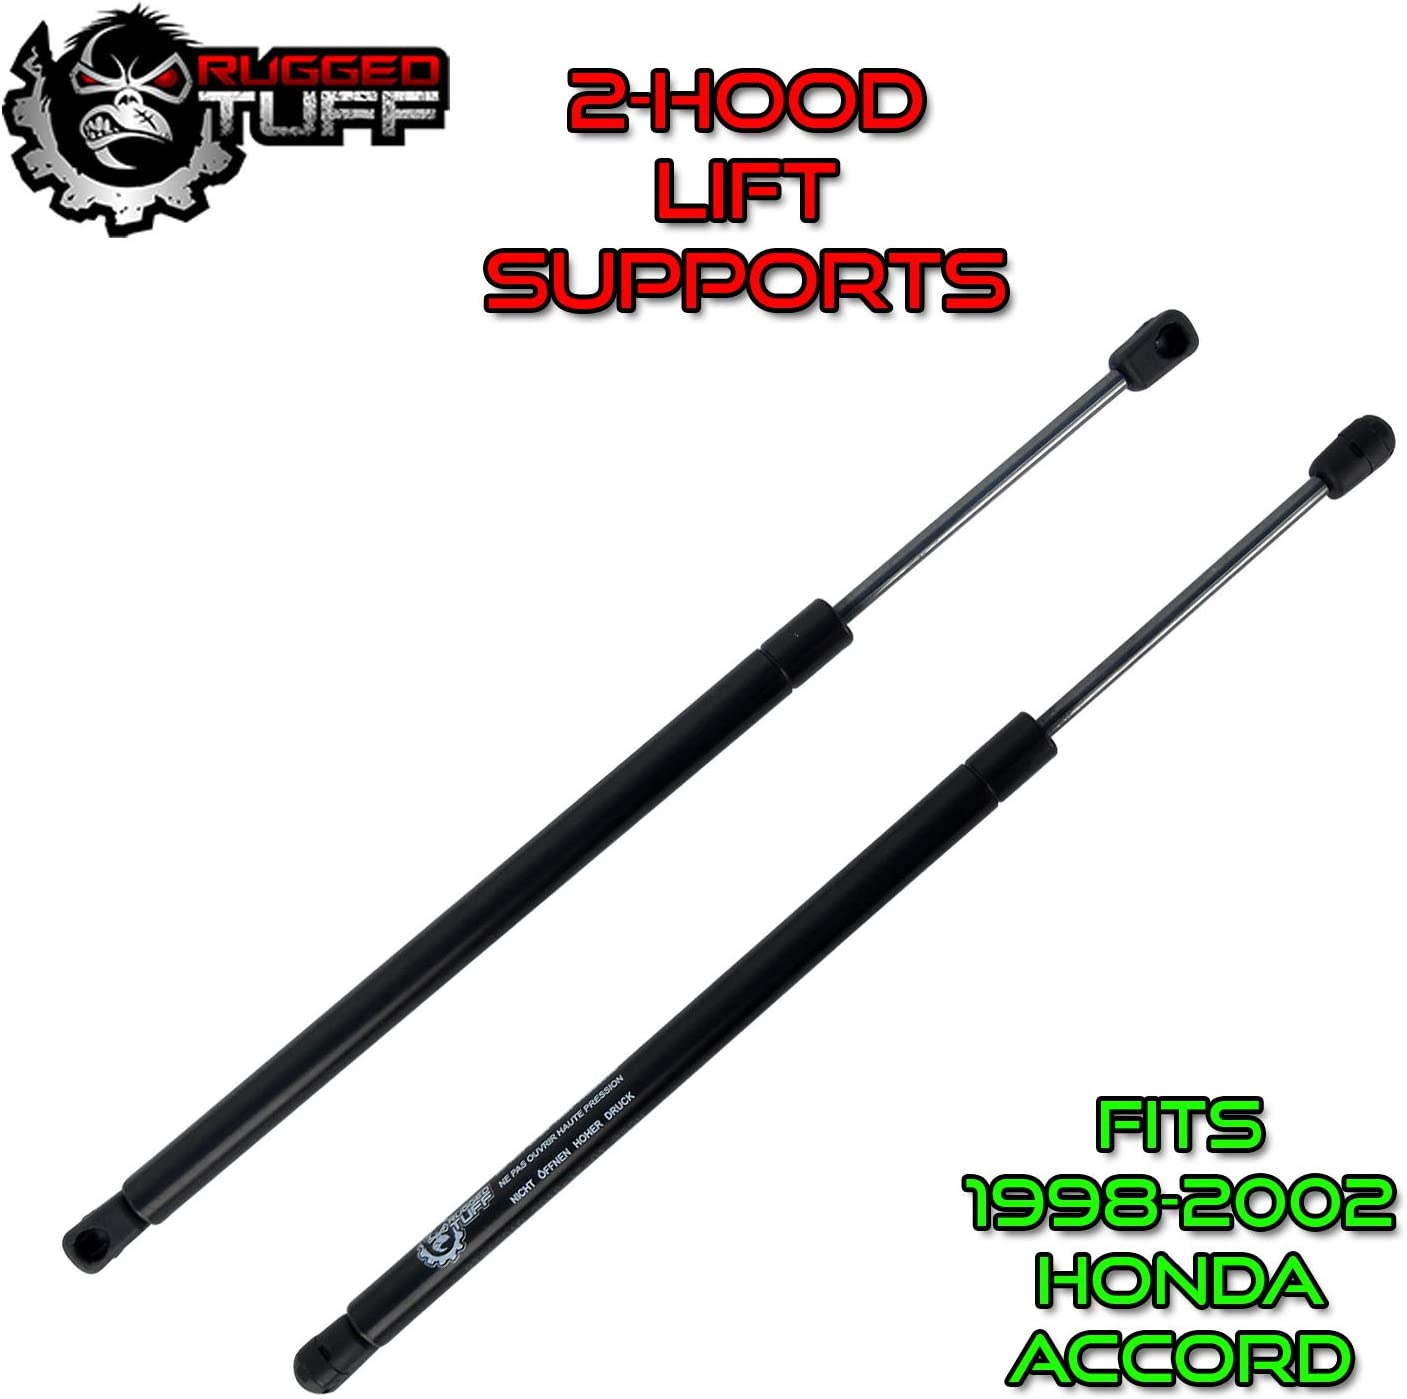 Vepagoo Front Hood Lift Supports for Acura TL 2004-2005 Gas Charged Hood Lift Support Shock Strut Set of 2